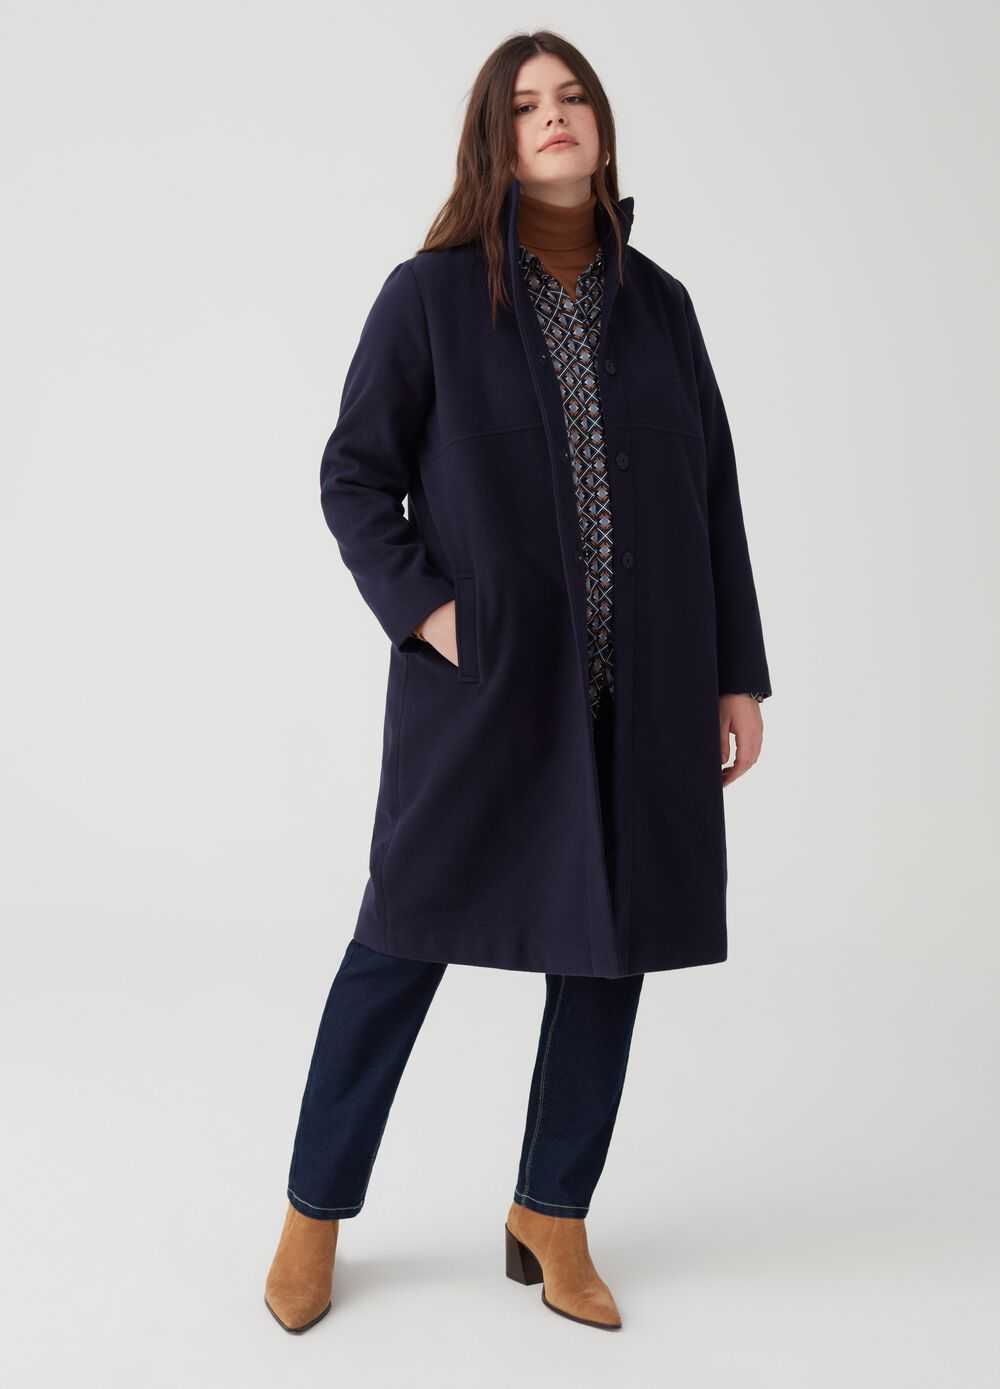 Curvy coat with high neck and buttons